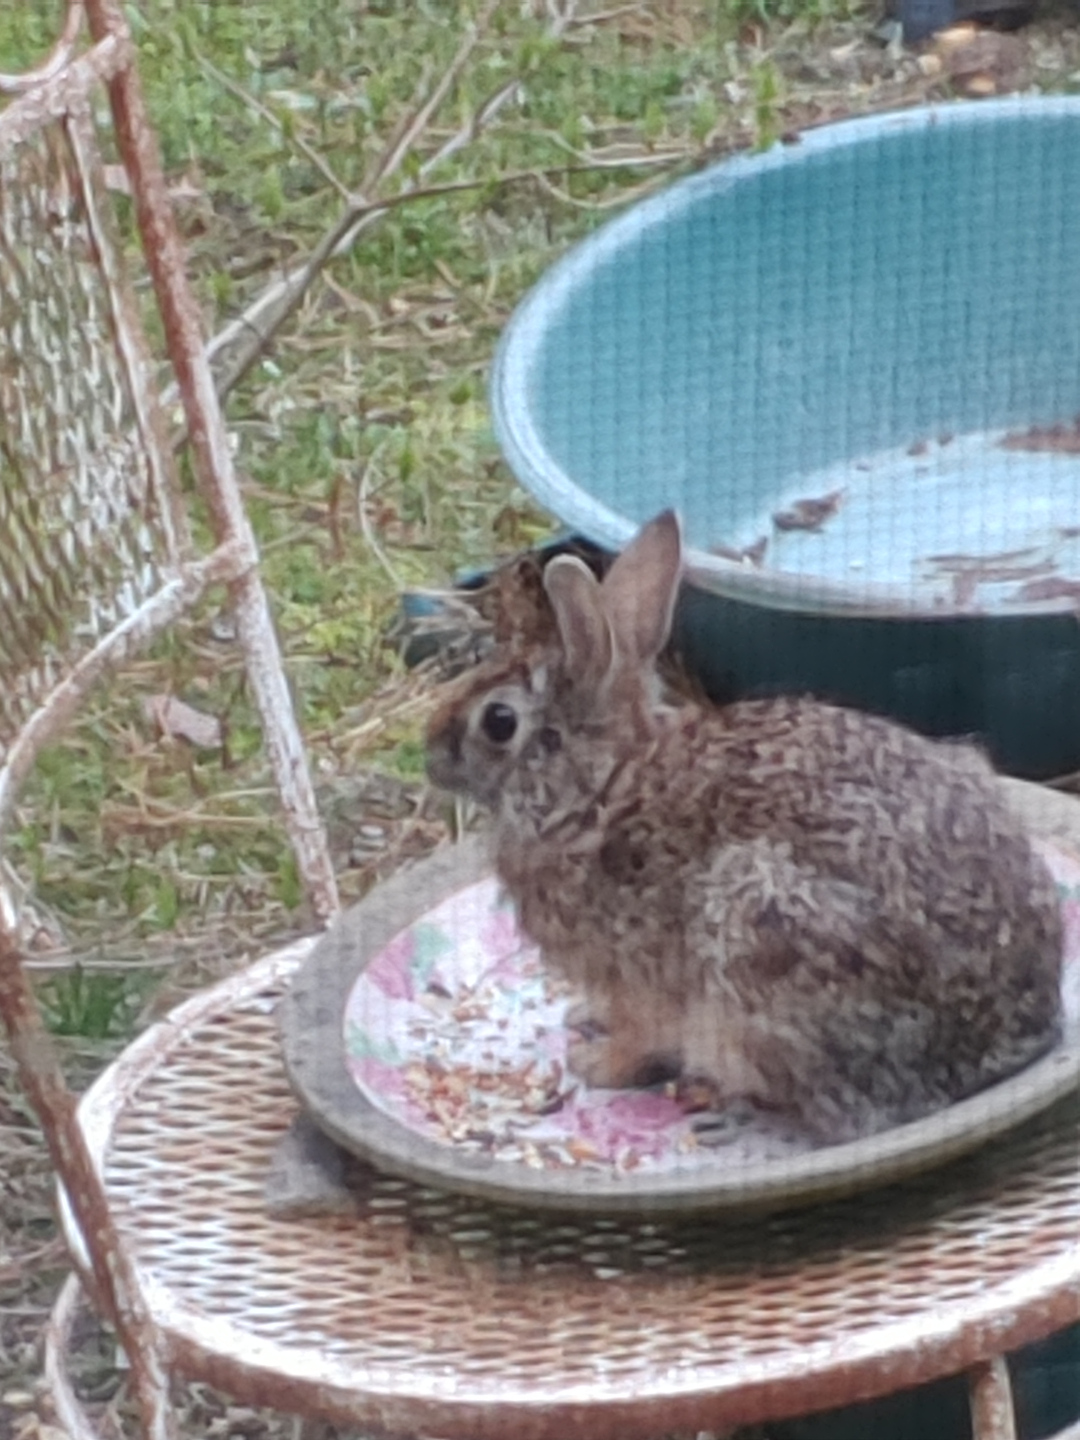 A brown rabbit sitting on a chair outside